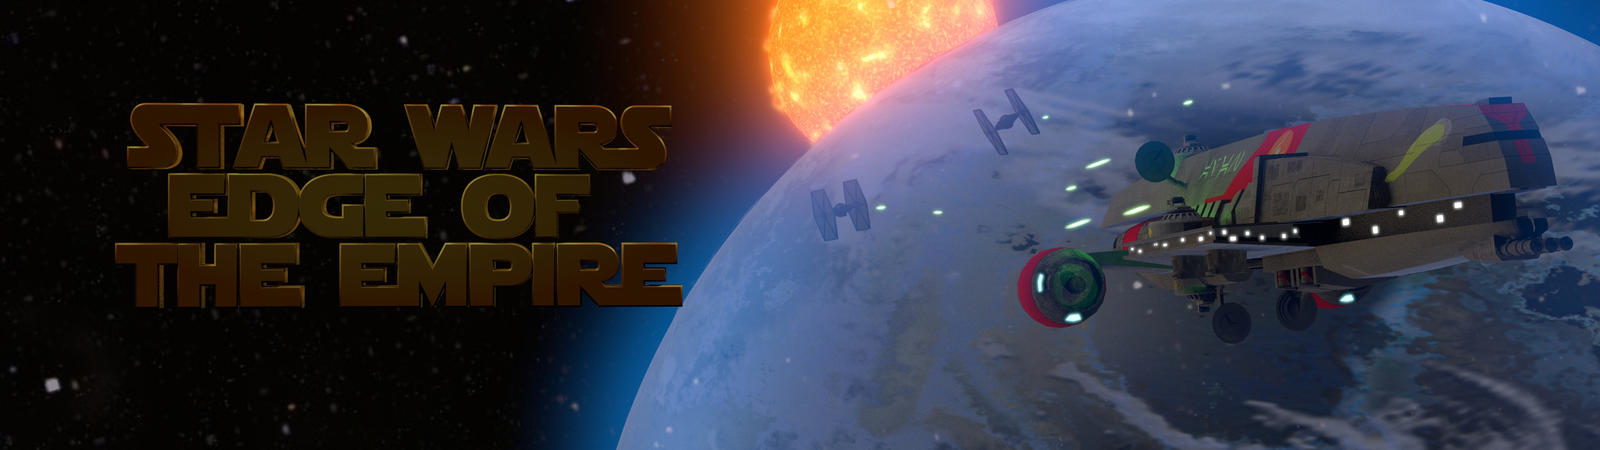 Star Wars Themed Dual Monitor Wallpaper By Spartanlord1014 On Deviantart